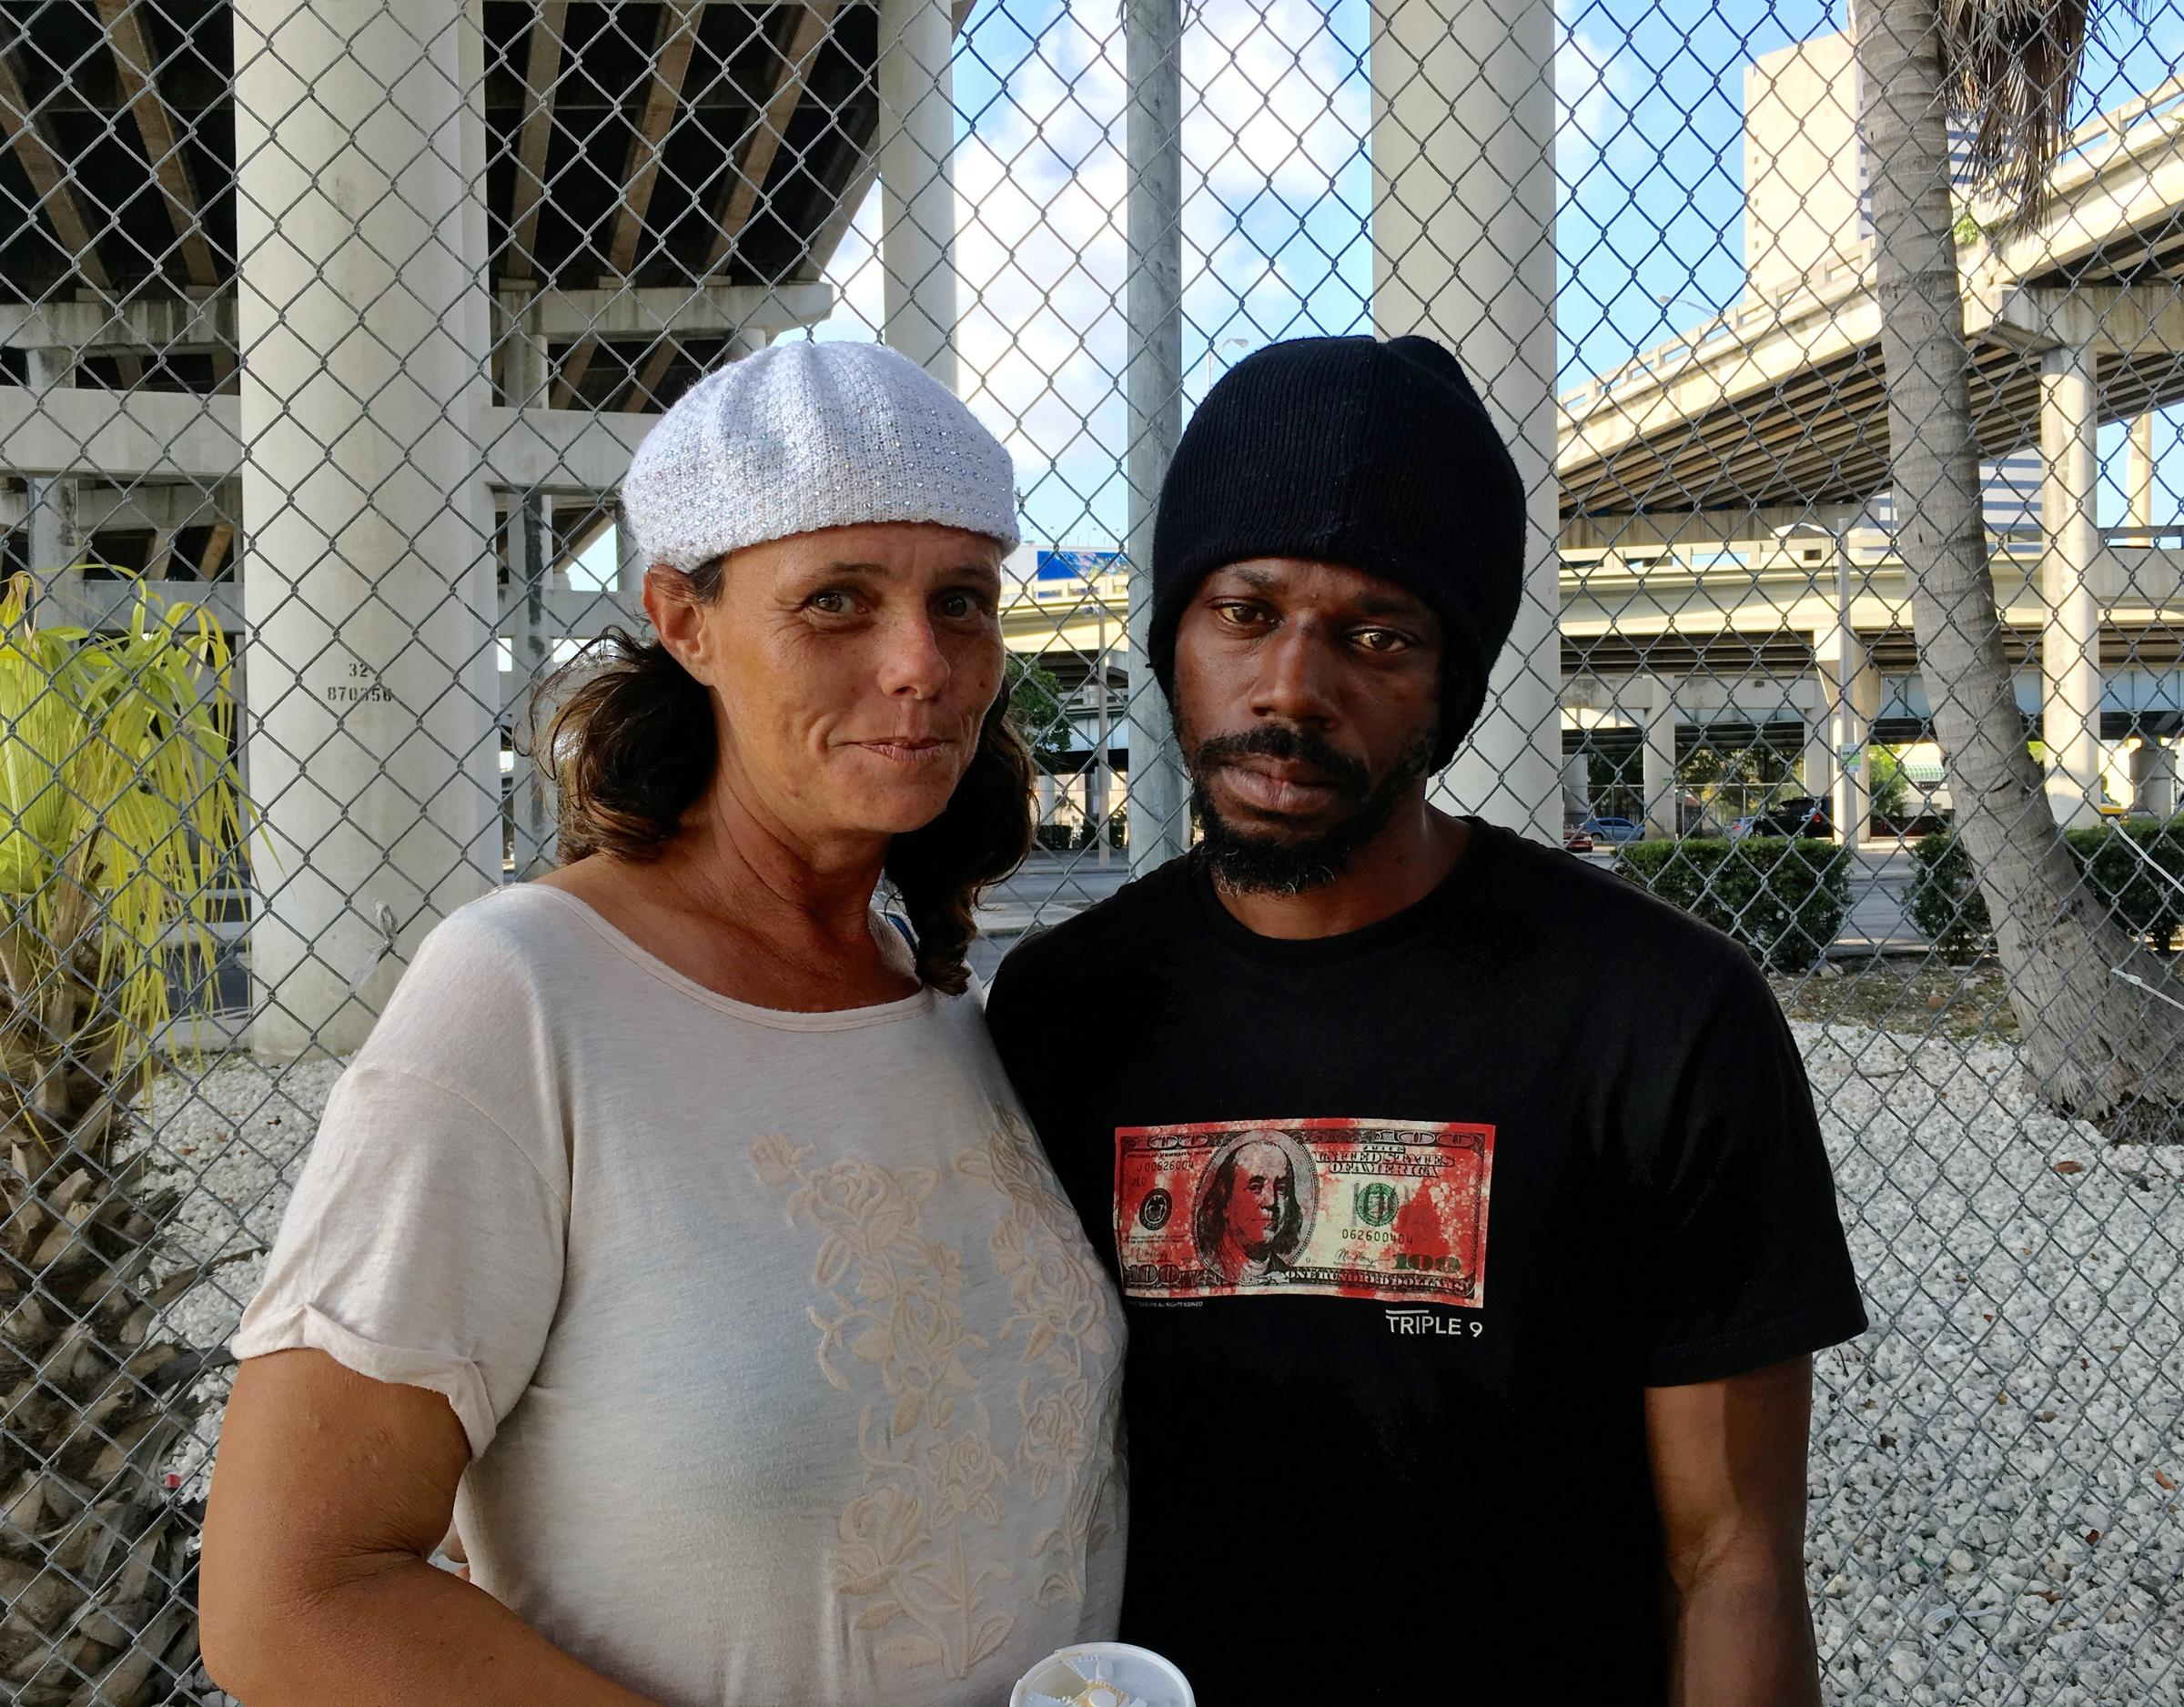 Lucy Perry, Left, And William Royal Both Lost Their Food Stamps With The  Help Of A Lawyer, Their Assistance Has Been Reinstated